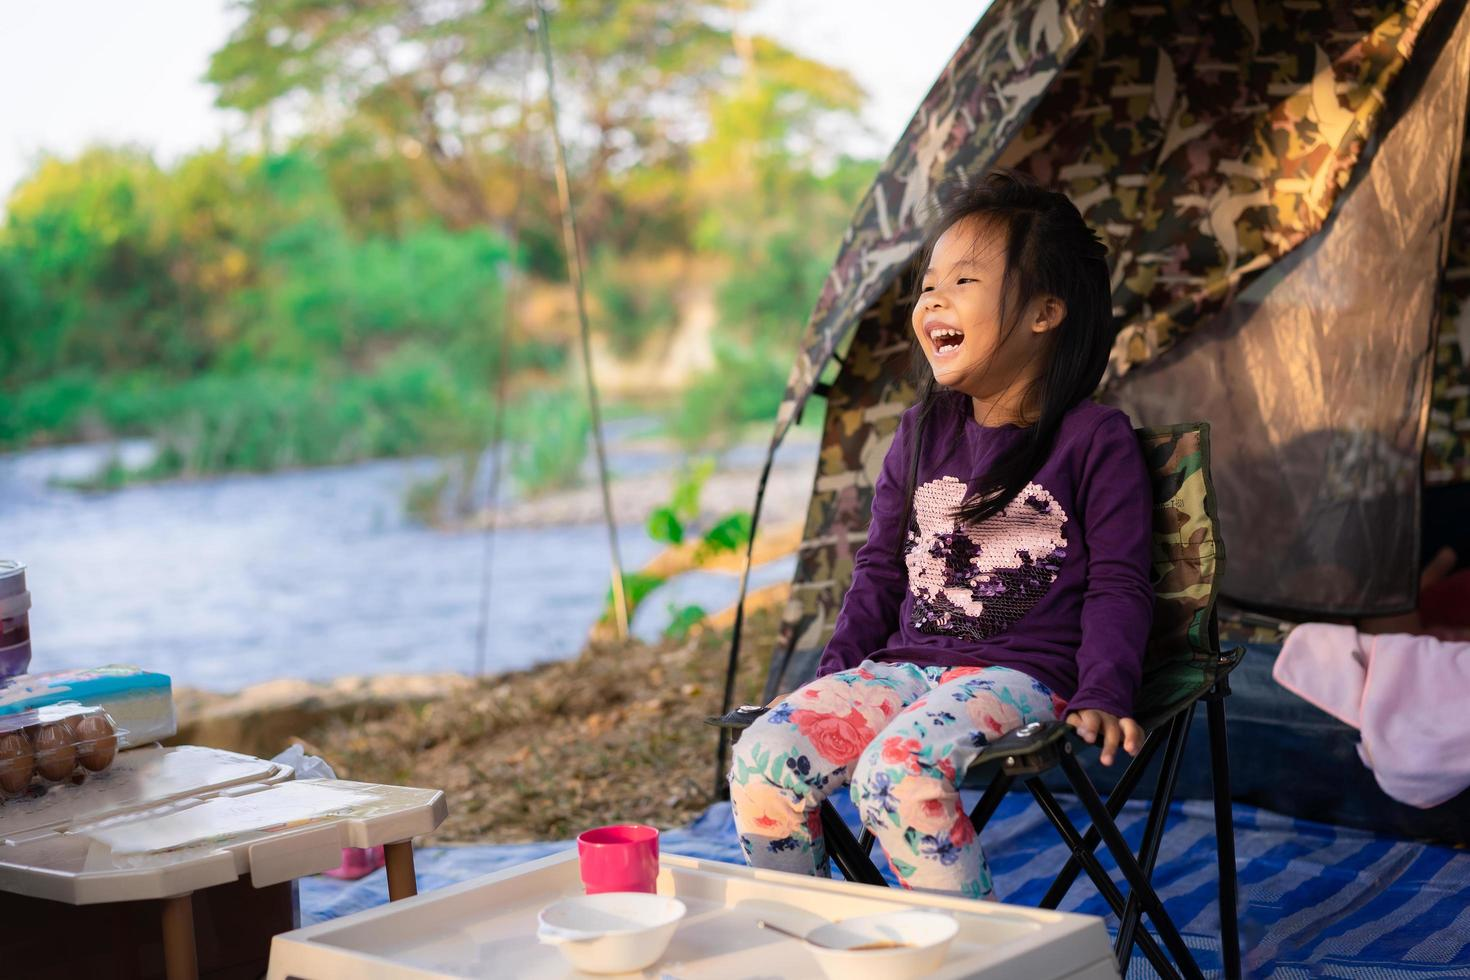 Young girl sitting at a campground, smiling photo